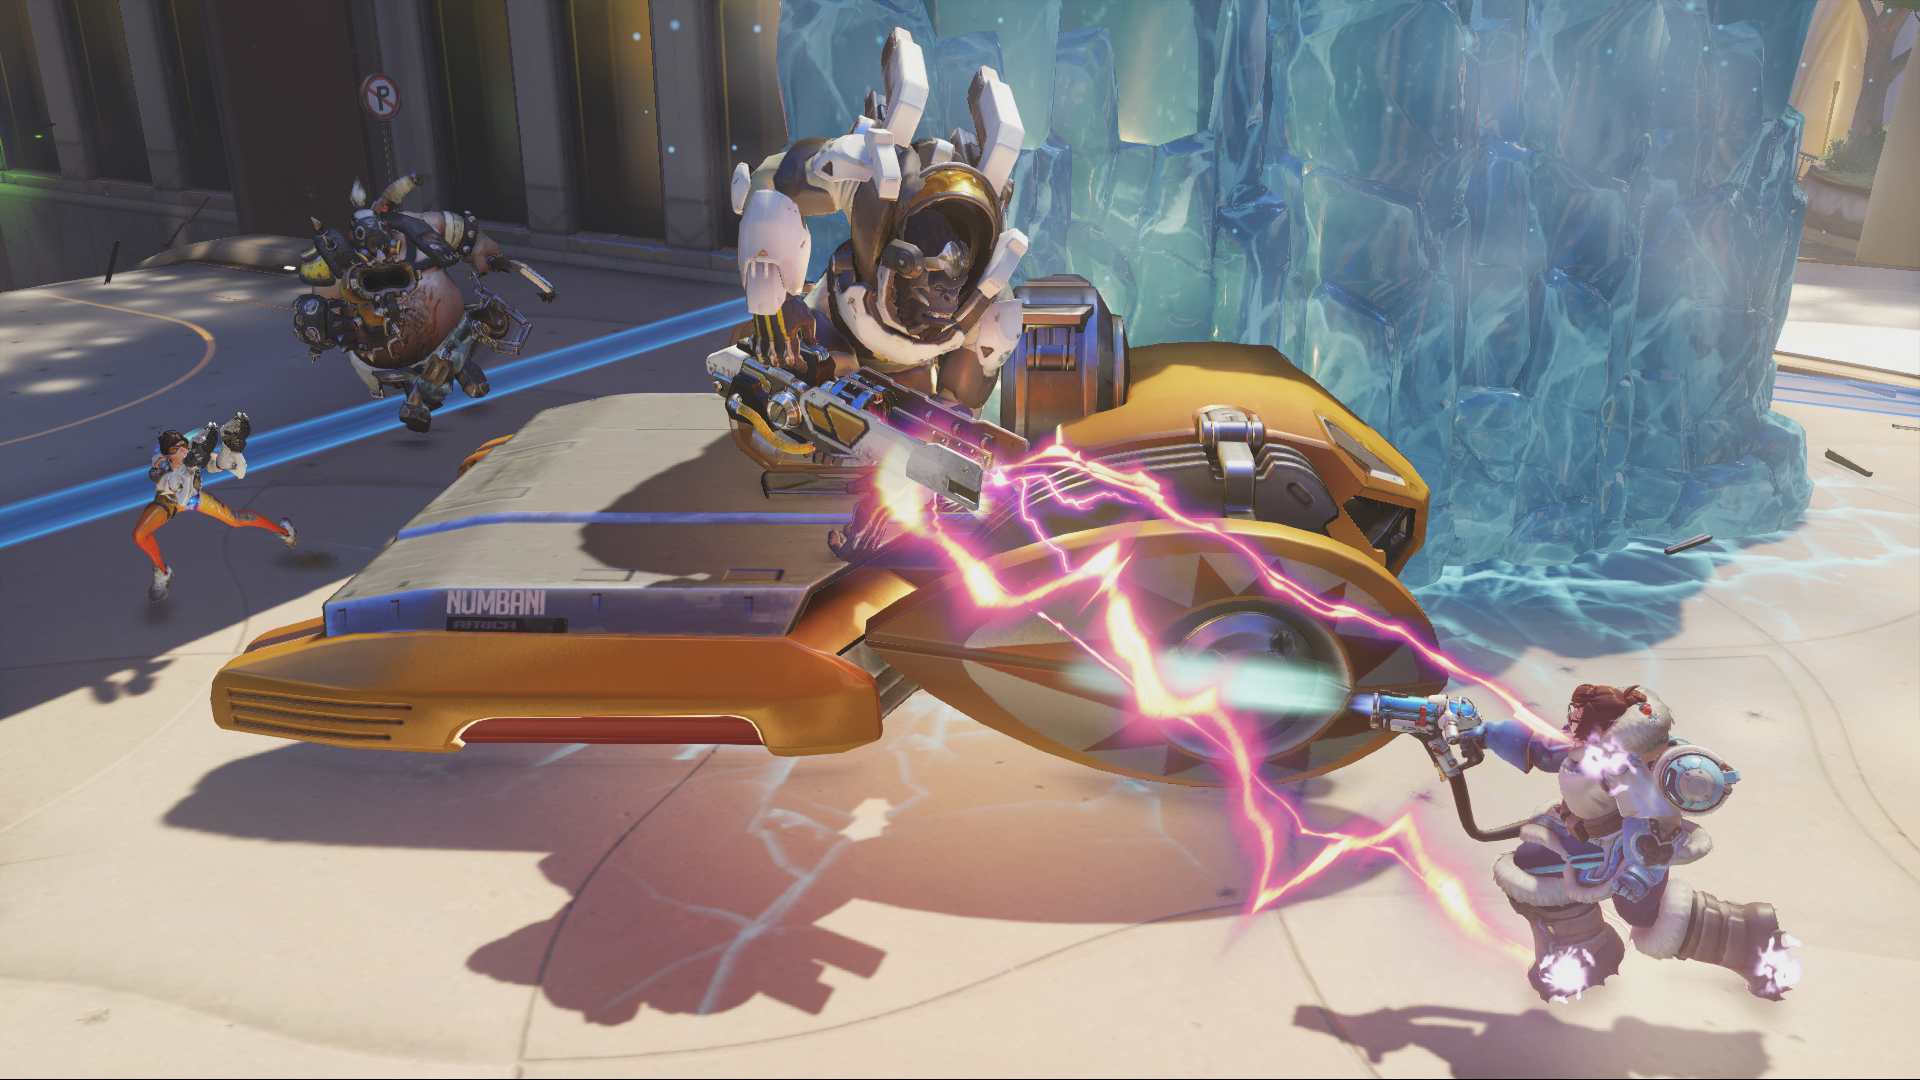 Fortnite may have just nicked Overwatch's iconic payload game mode for its latest LTM.